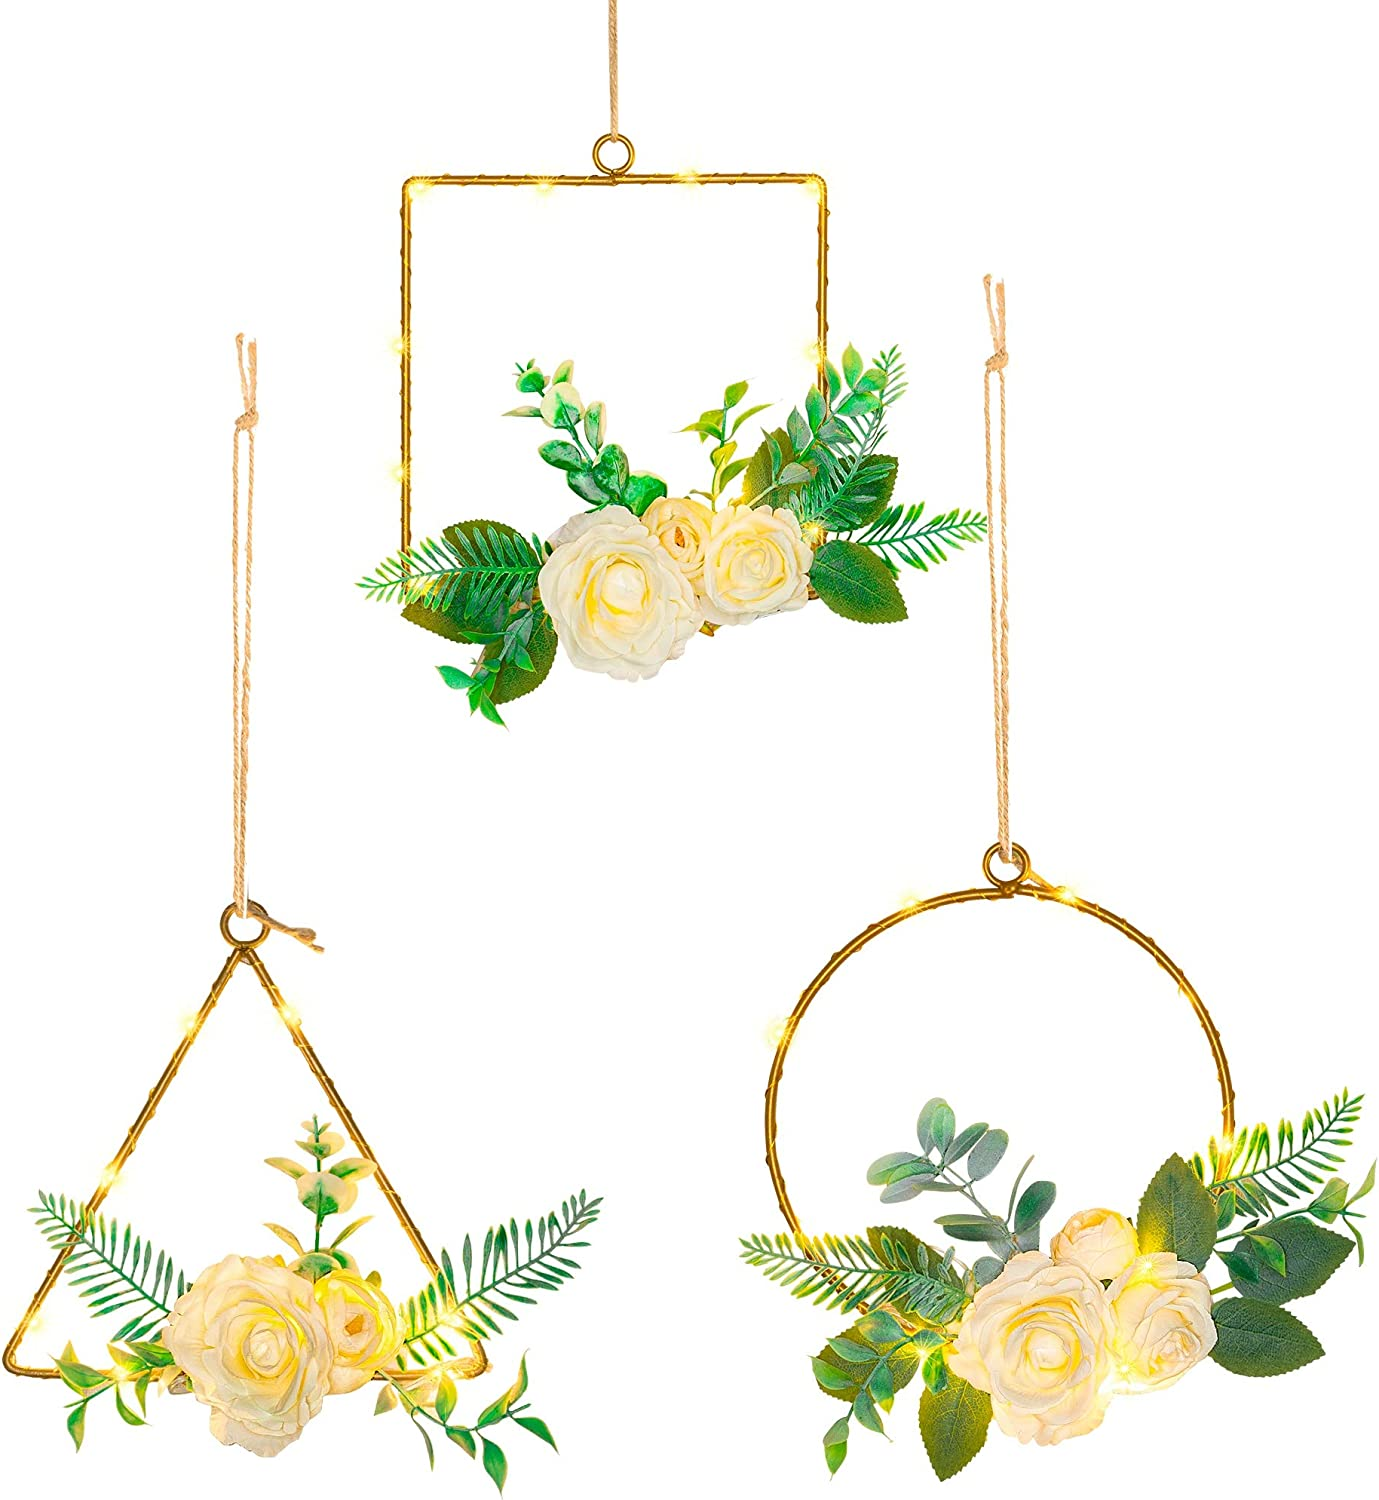 FUNPENY Floral Hoop Wreath with Lights, Set of 3 Metal Artificial White Rose Hanging Circles, Triangles and Squares with LED Light, Wall Hoop Garland Valentine's Day Wedding Nursery Wall Decor